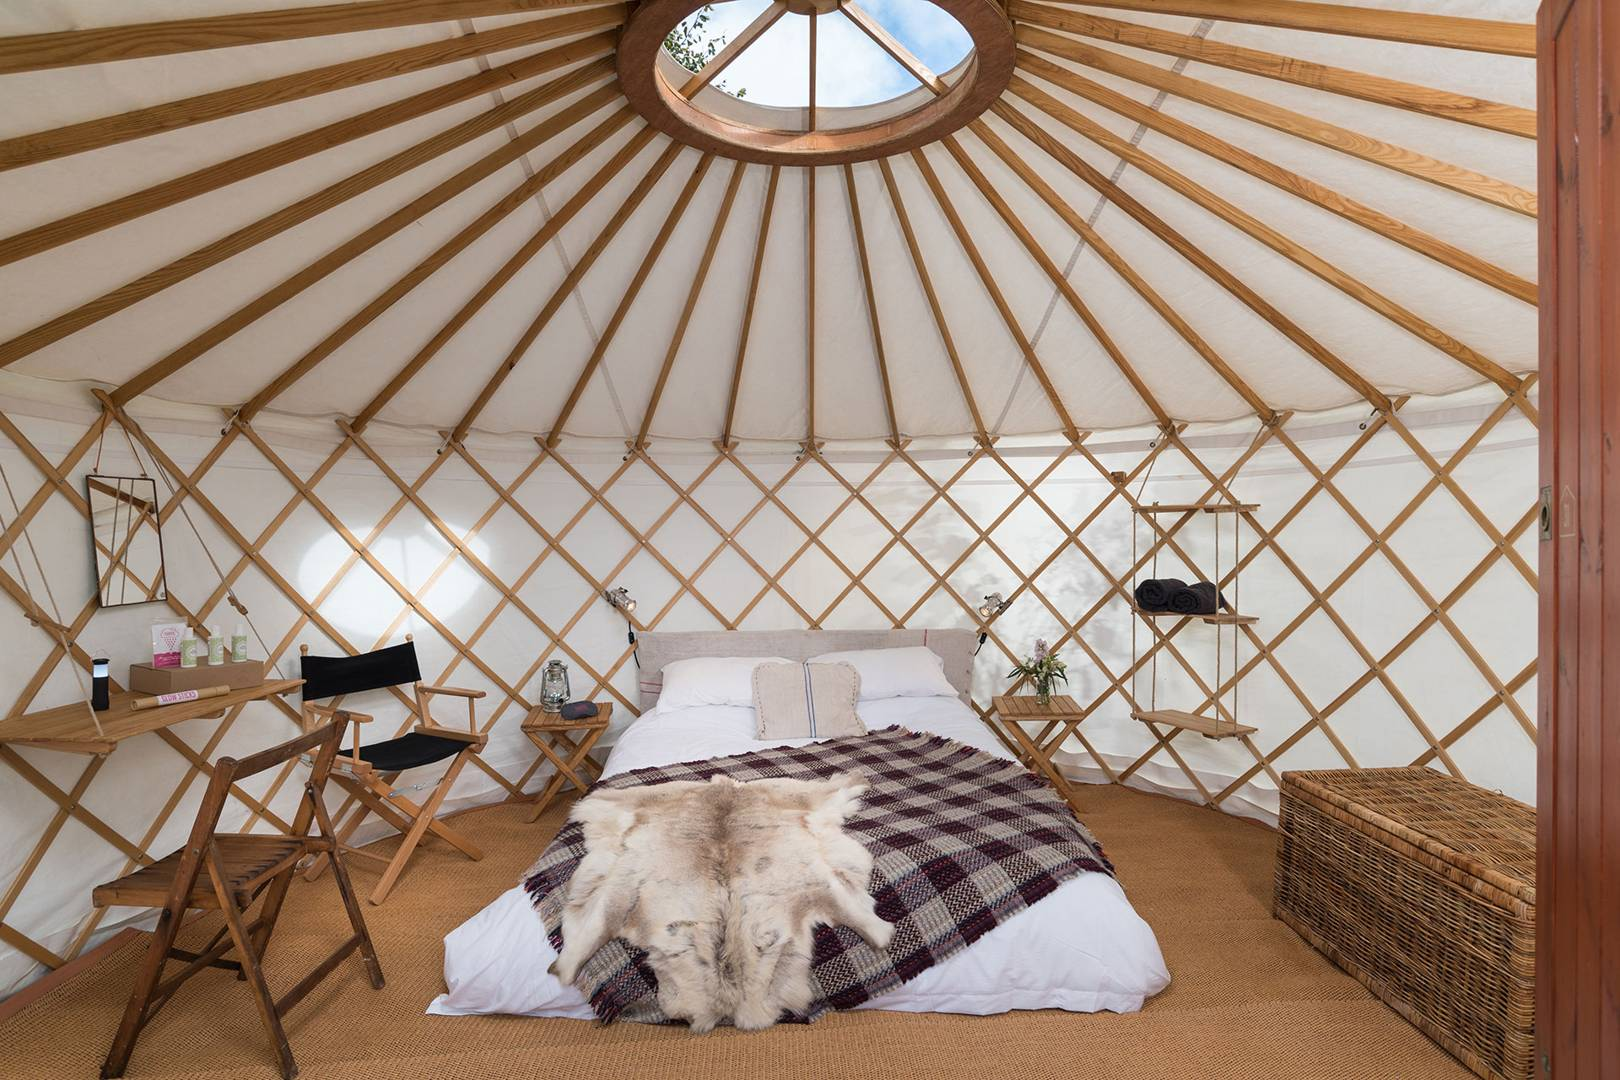 Going to Glastonbury 2020? These are the chicest places to stay